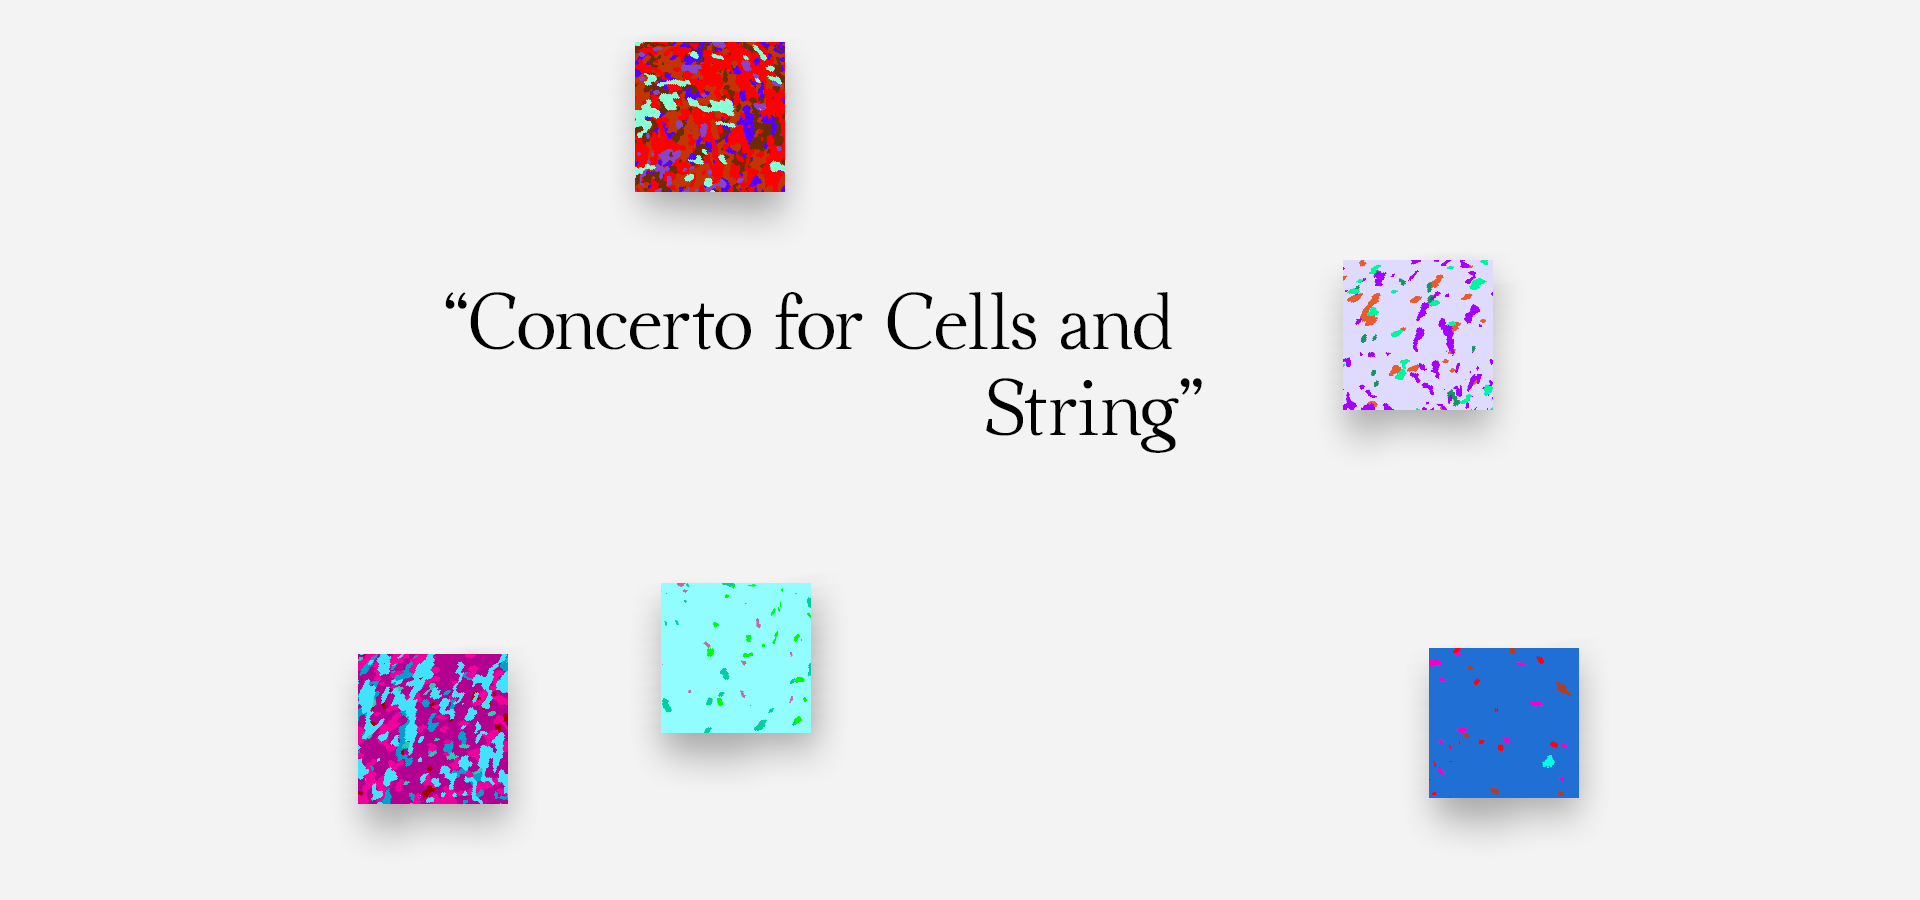 Concerto for Cells and String